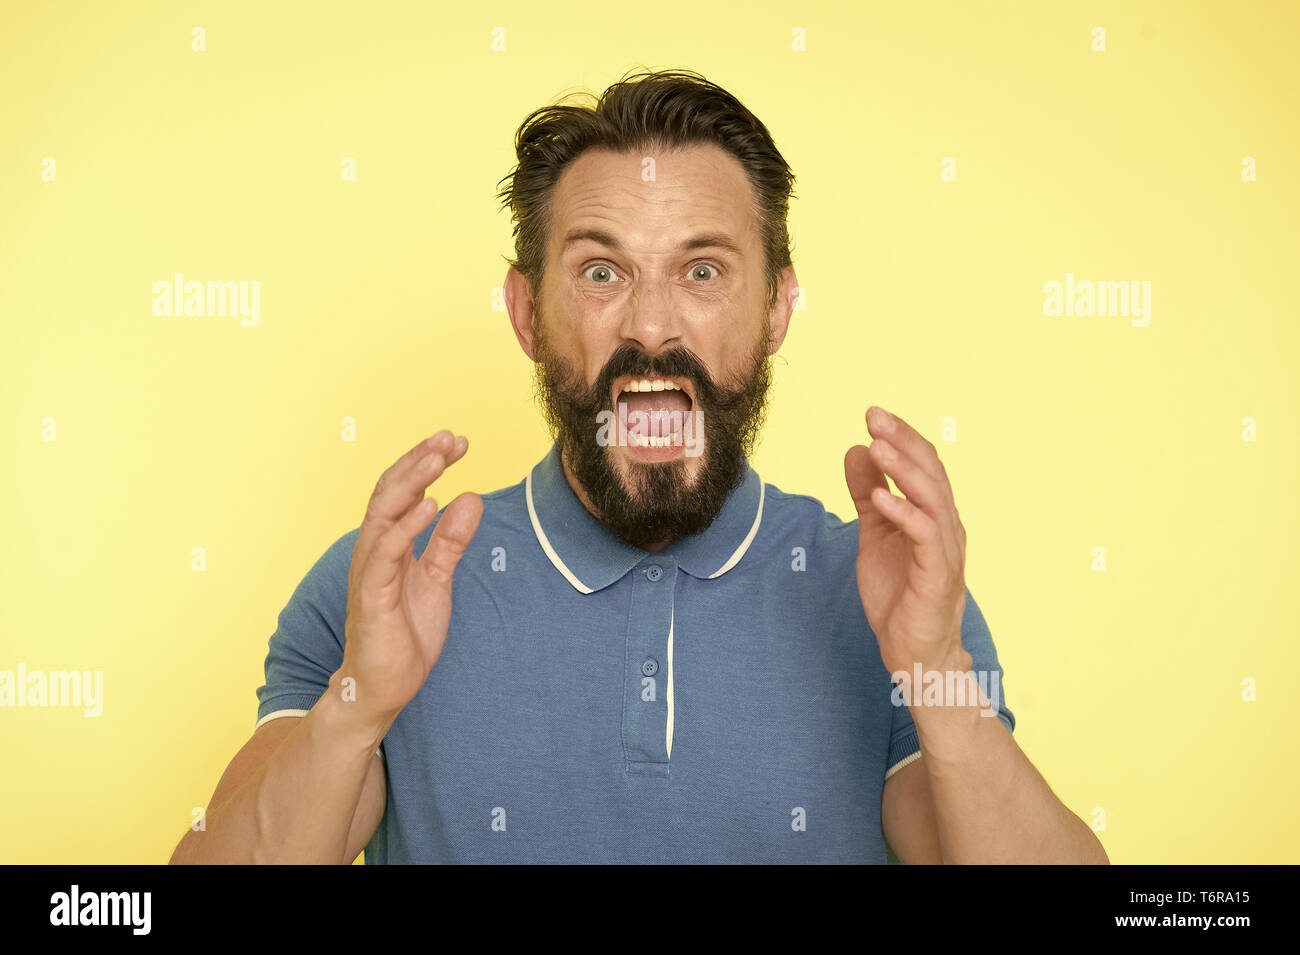 Overwhelmed with emotions. Handsome shouting mature man screaming standing against yellow background. Man bearded irritated annoyed can not keep calm anymore. Stop annoying him. Stressful adult life. - Stock Image